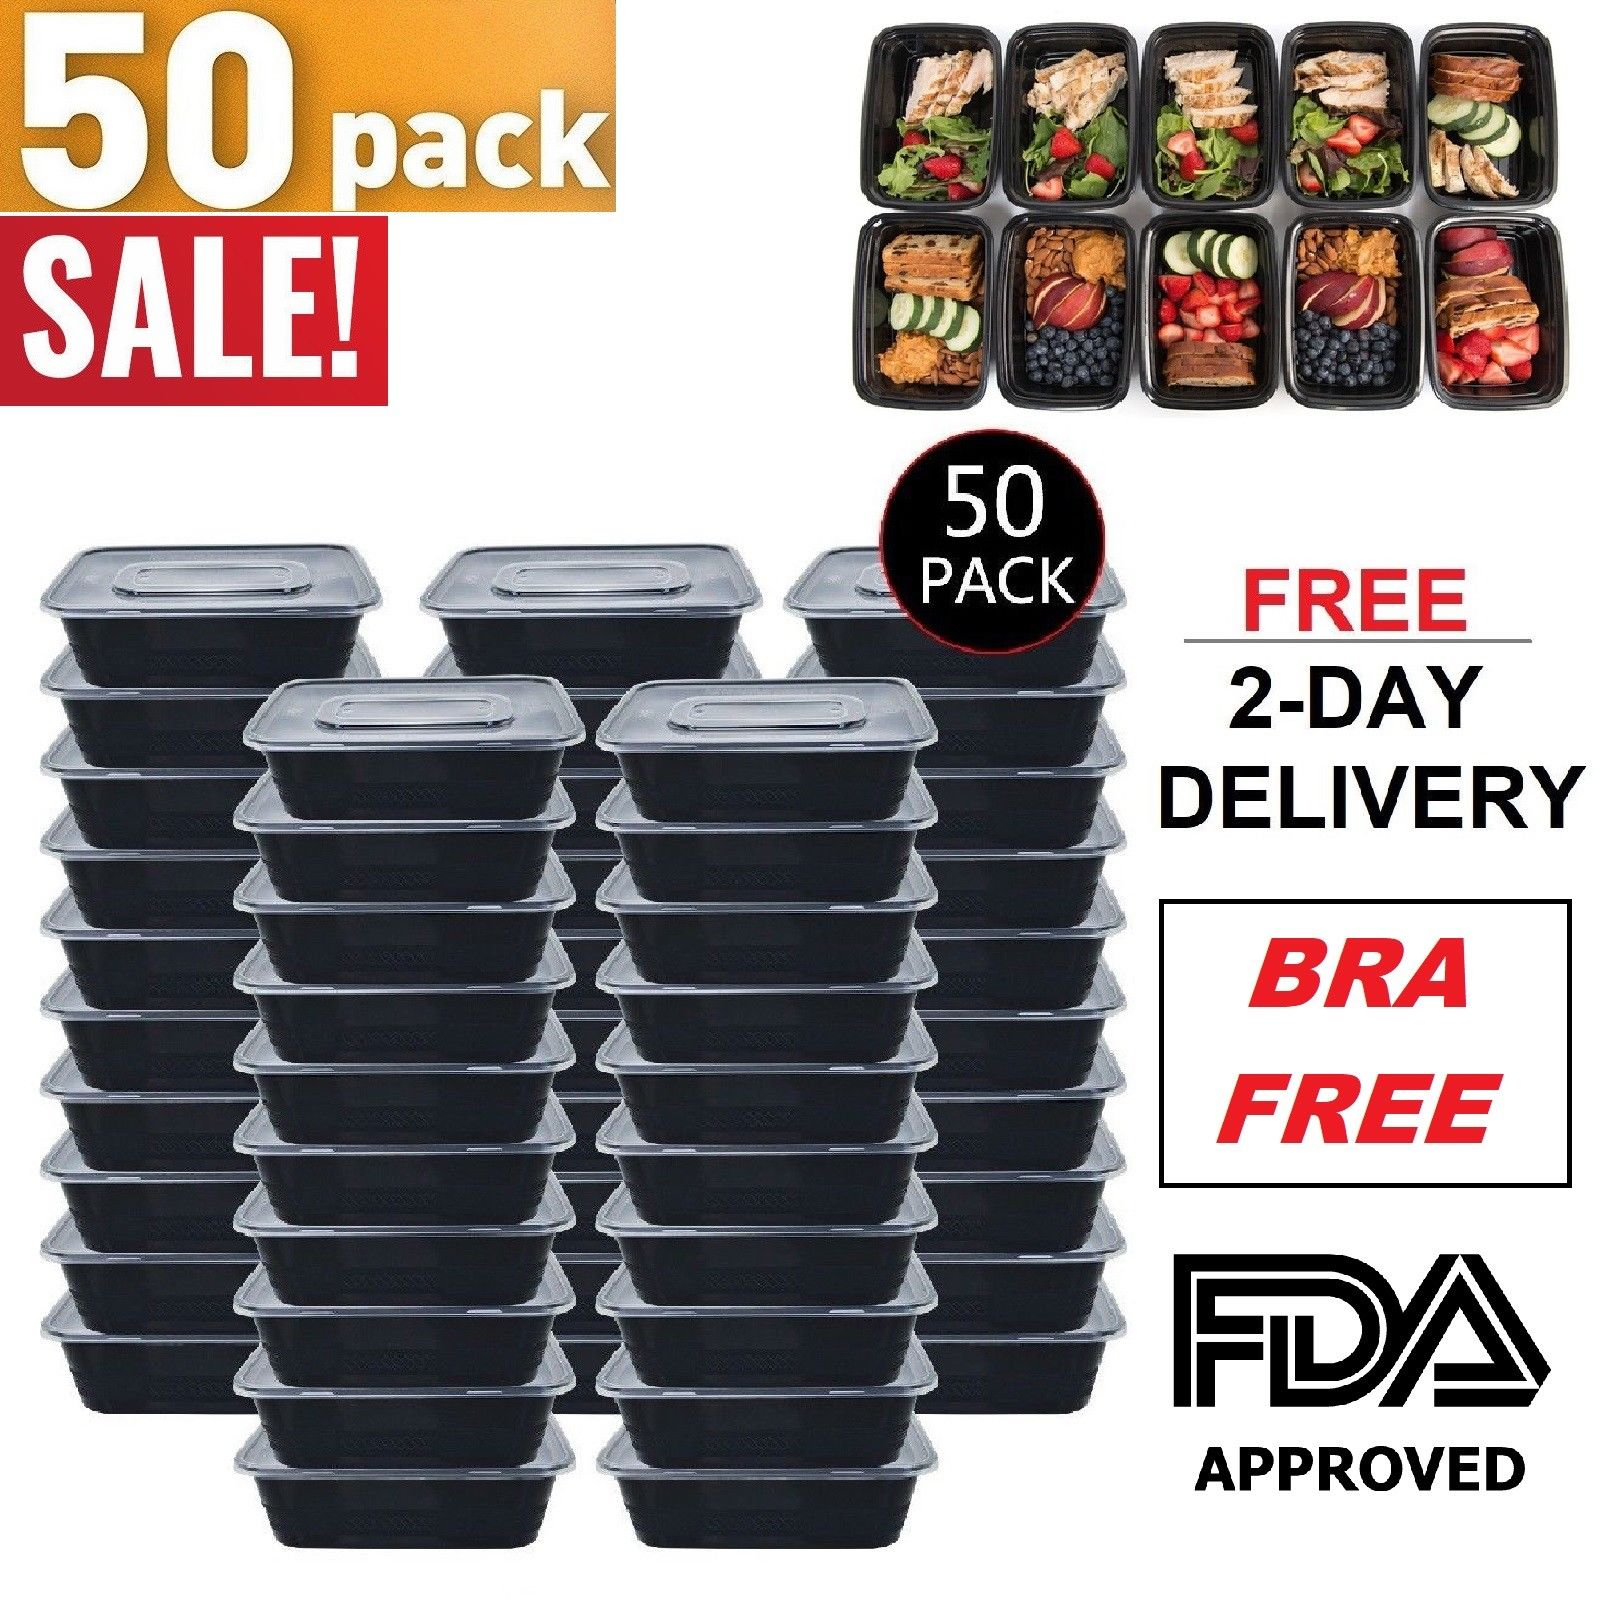 50 Meal Prep Containers 1 Compartment Food Storage Boxes Reusable Microwave Safe 1